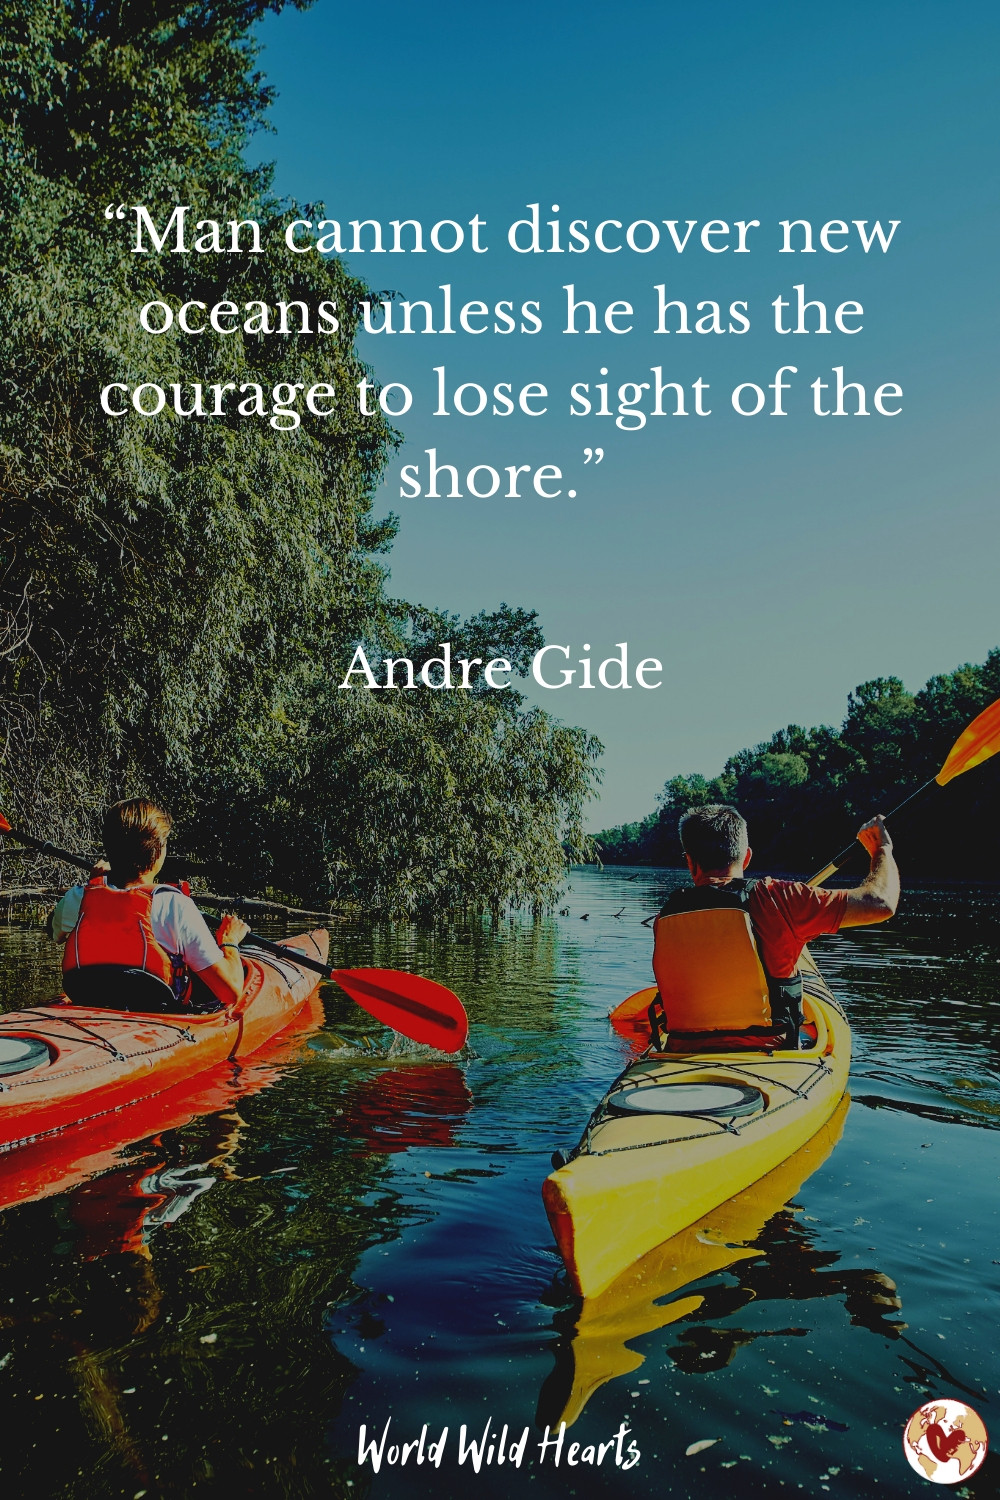 travel quote that inspires with image